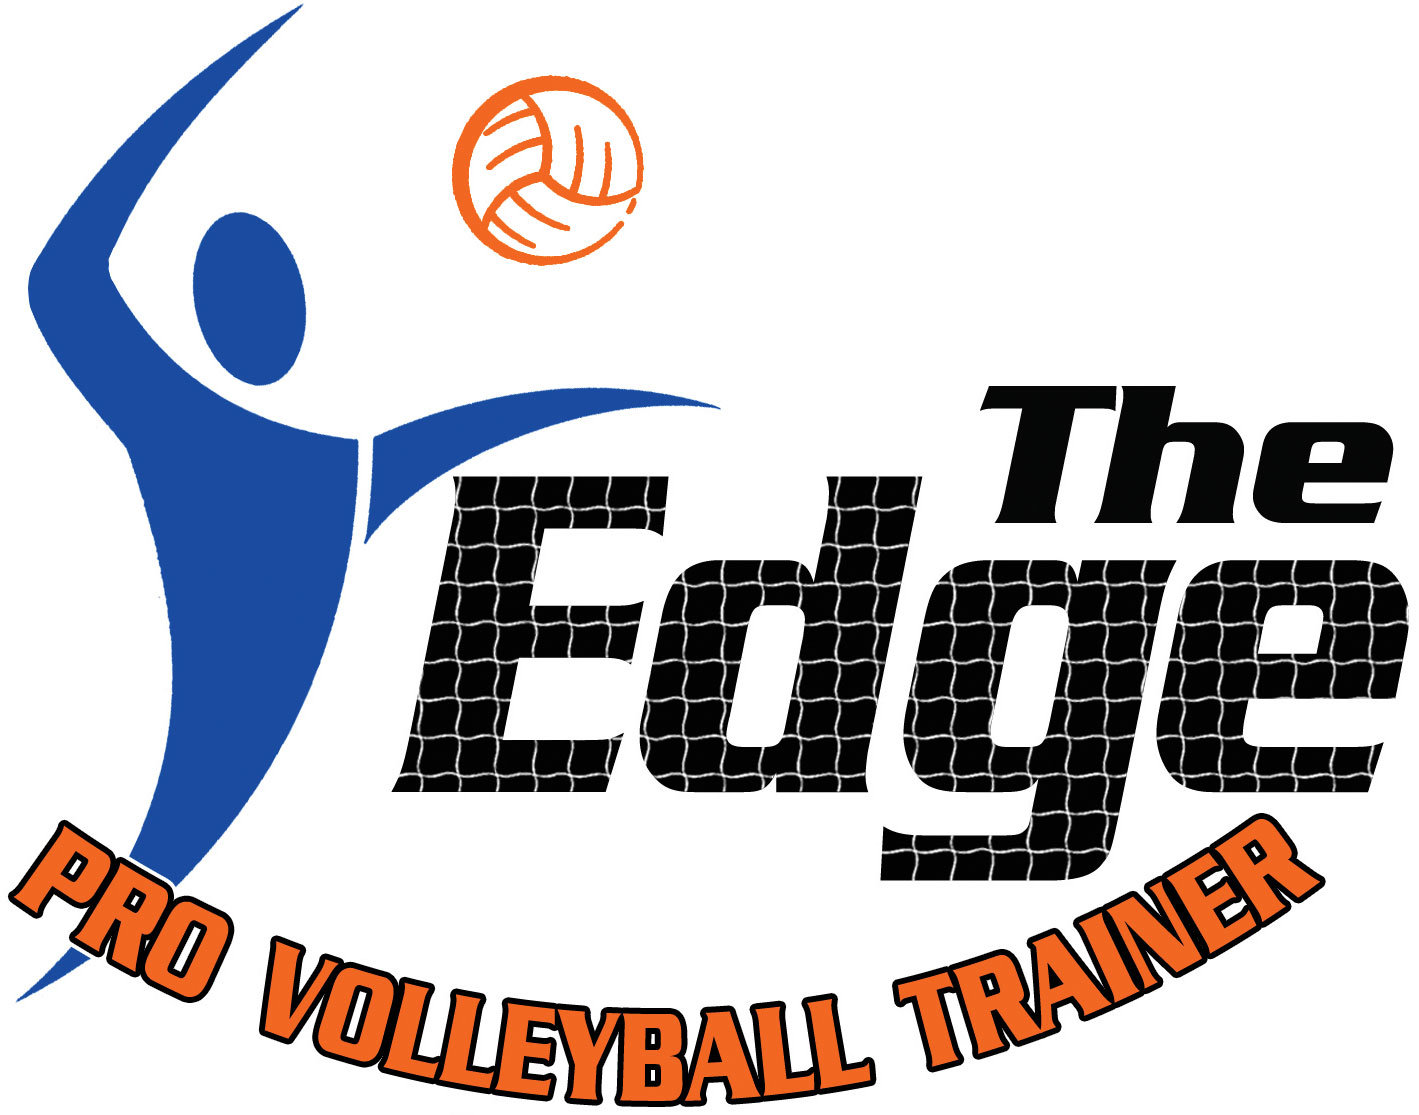 The Edge Pro Volleyball Trainer